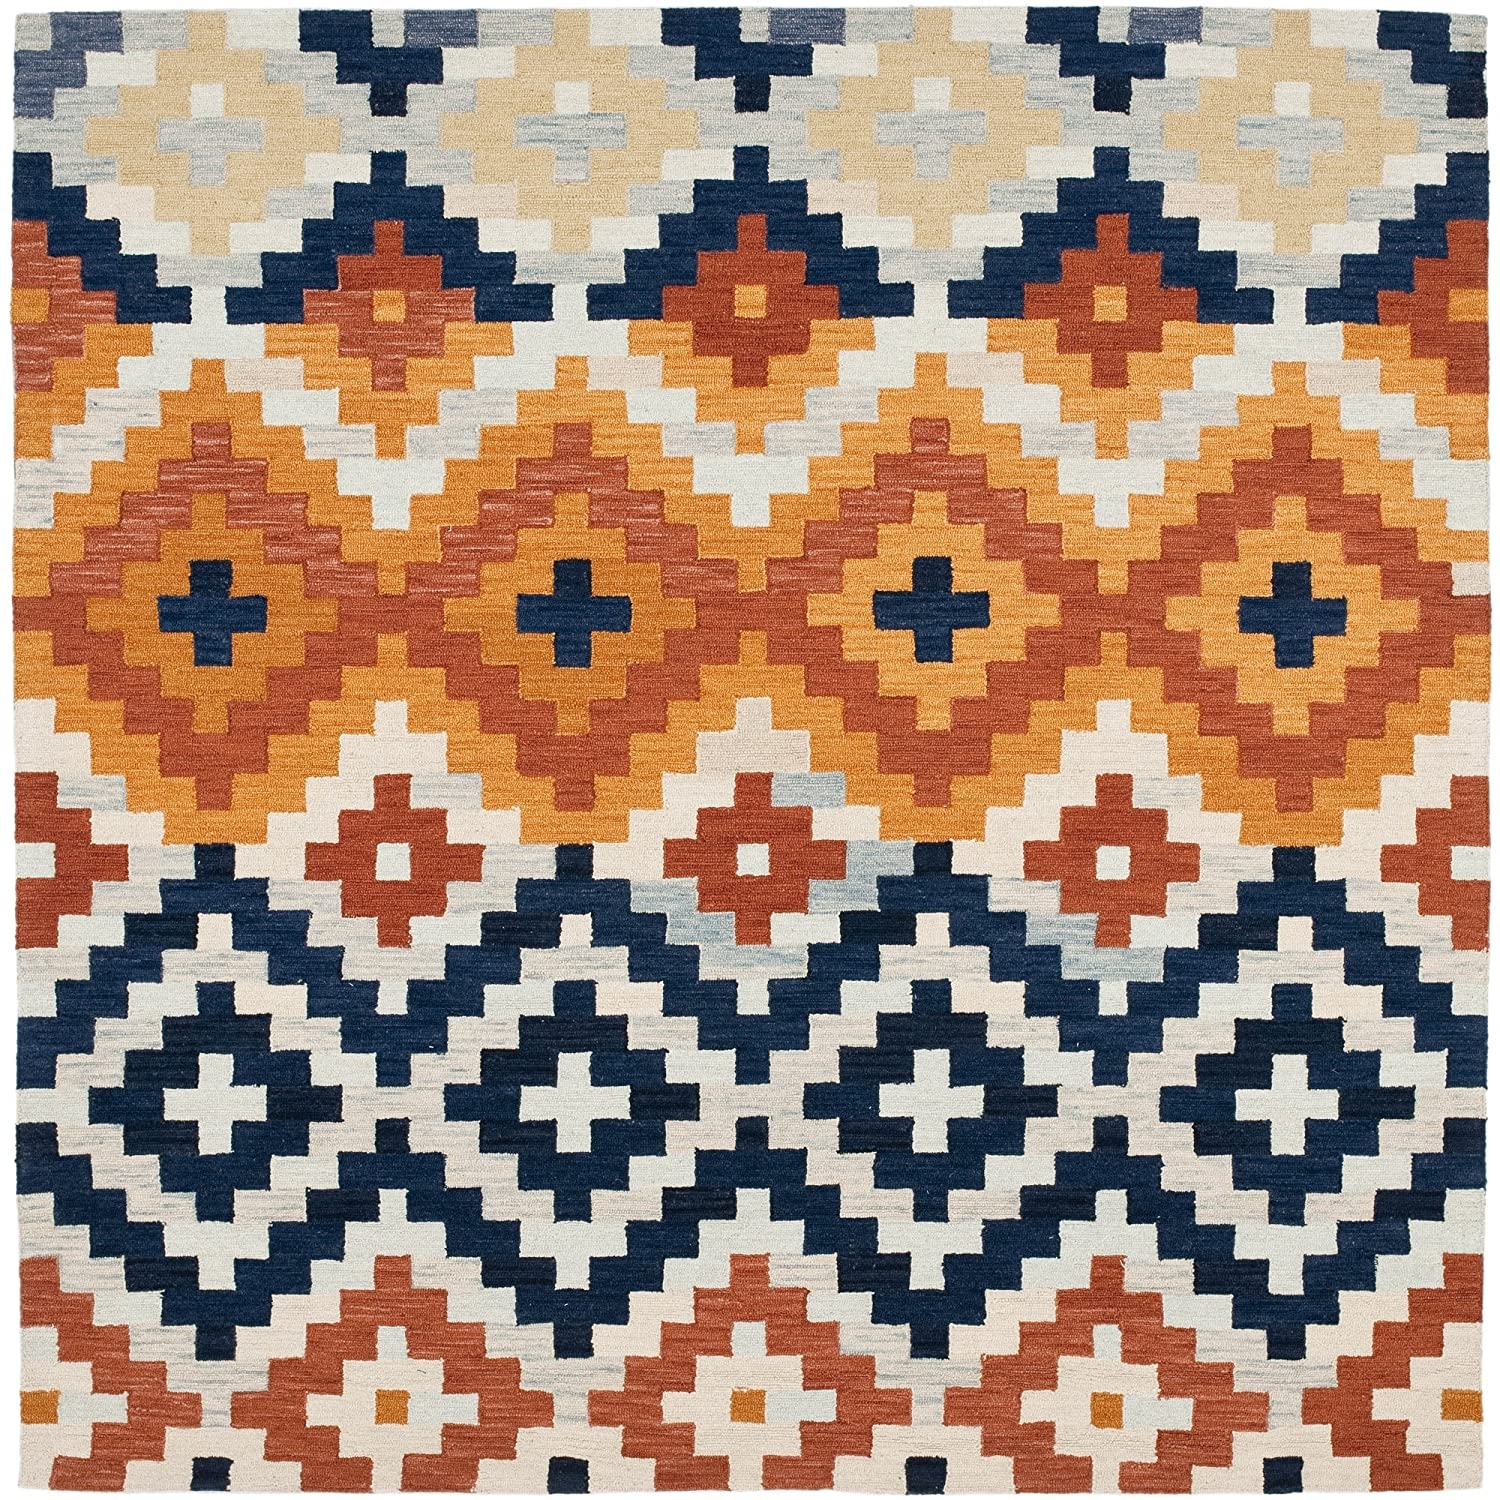 Amazon.com: Safavieh Chelsea Collection HK726A Hand Hooked Multicolored  Premium Wool Square Area Rug (6u0027 Square): Kitchen U0026 Dining